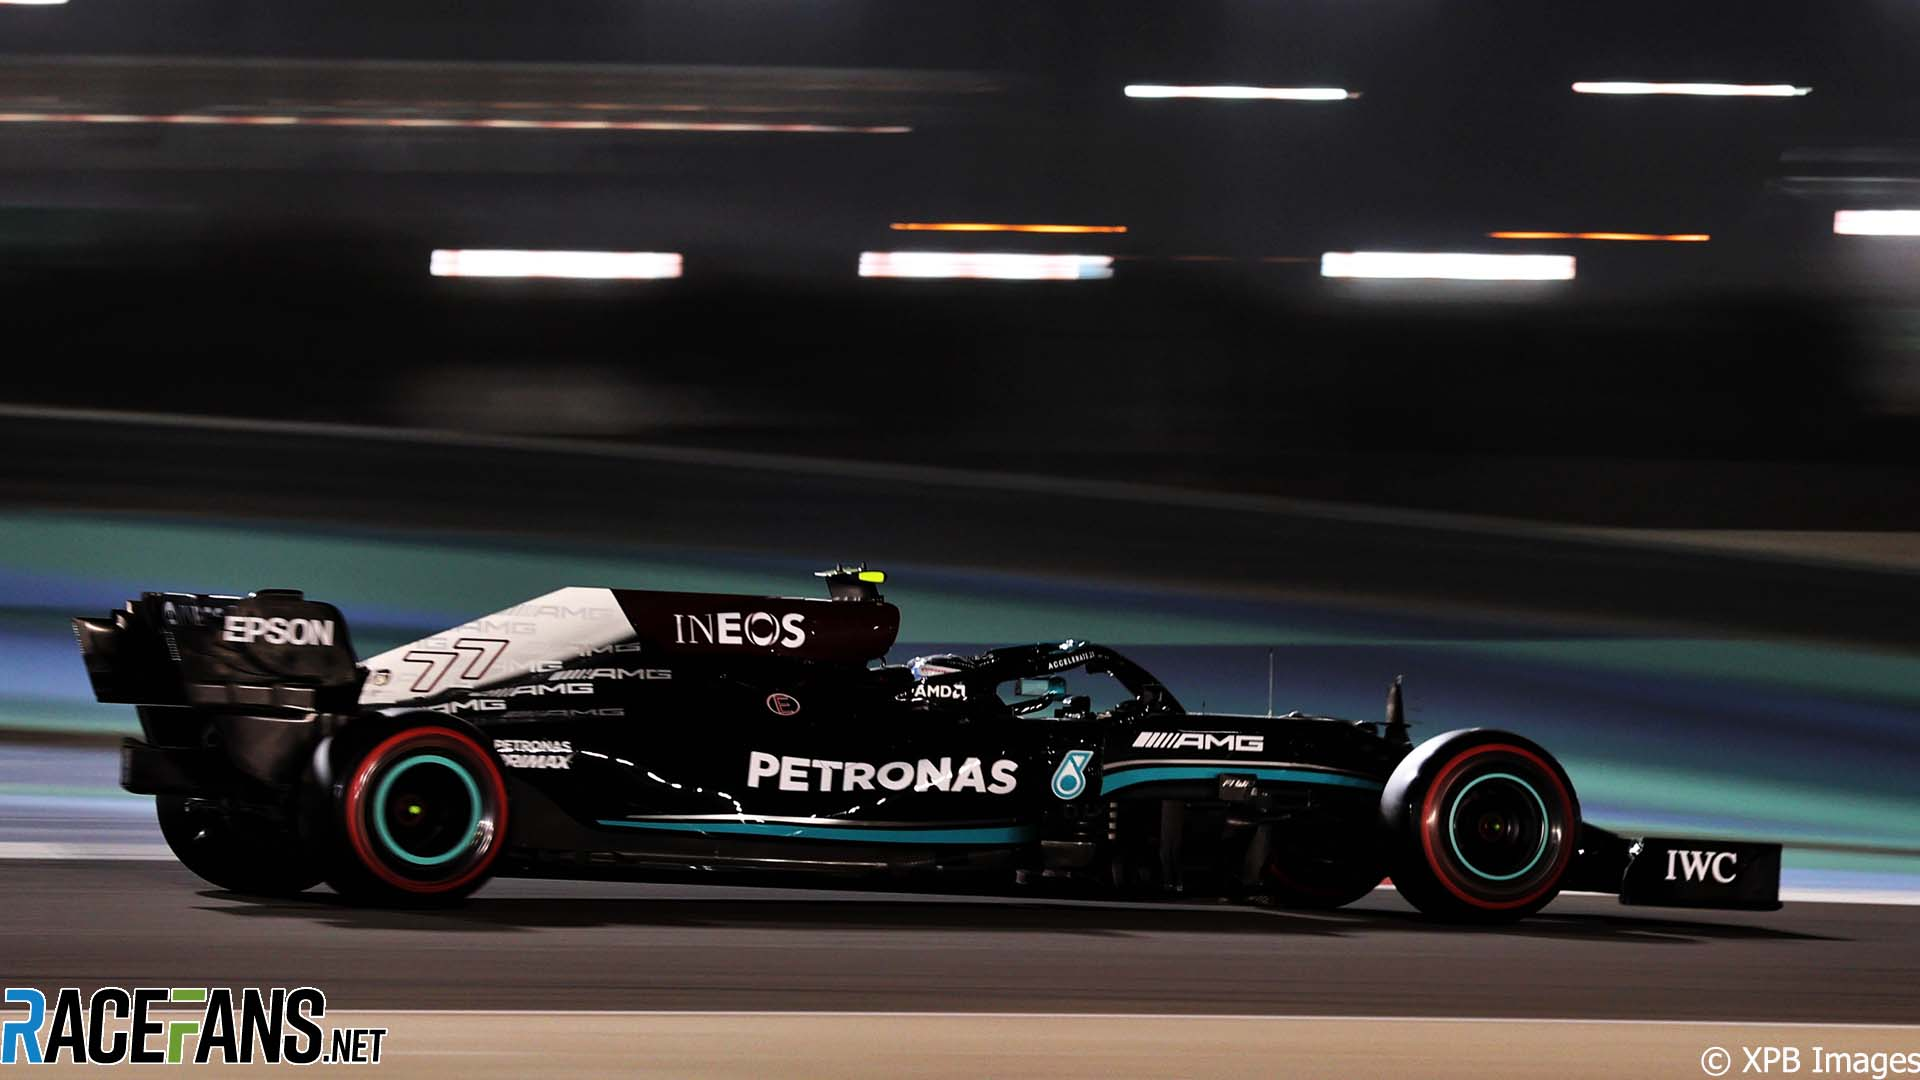 Valtteri Bottas, Mercedes, Bahrain International Circuit, 2021